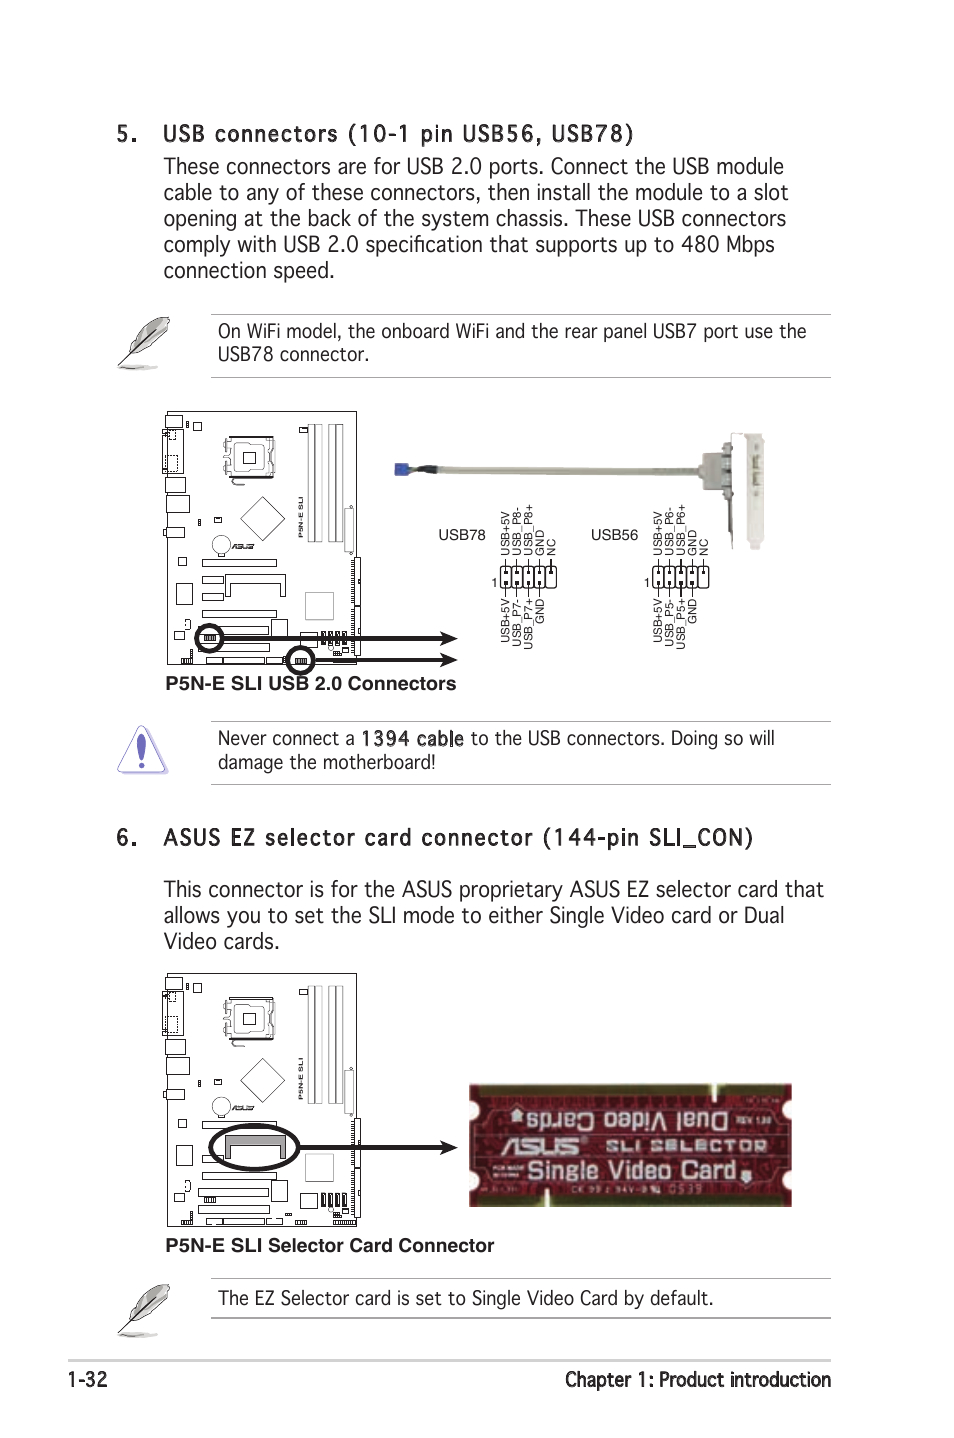 Asus P5N-E Sli User Manual | Page 46 / 122 - Asus P5Ne Usb Wiring Diagram